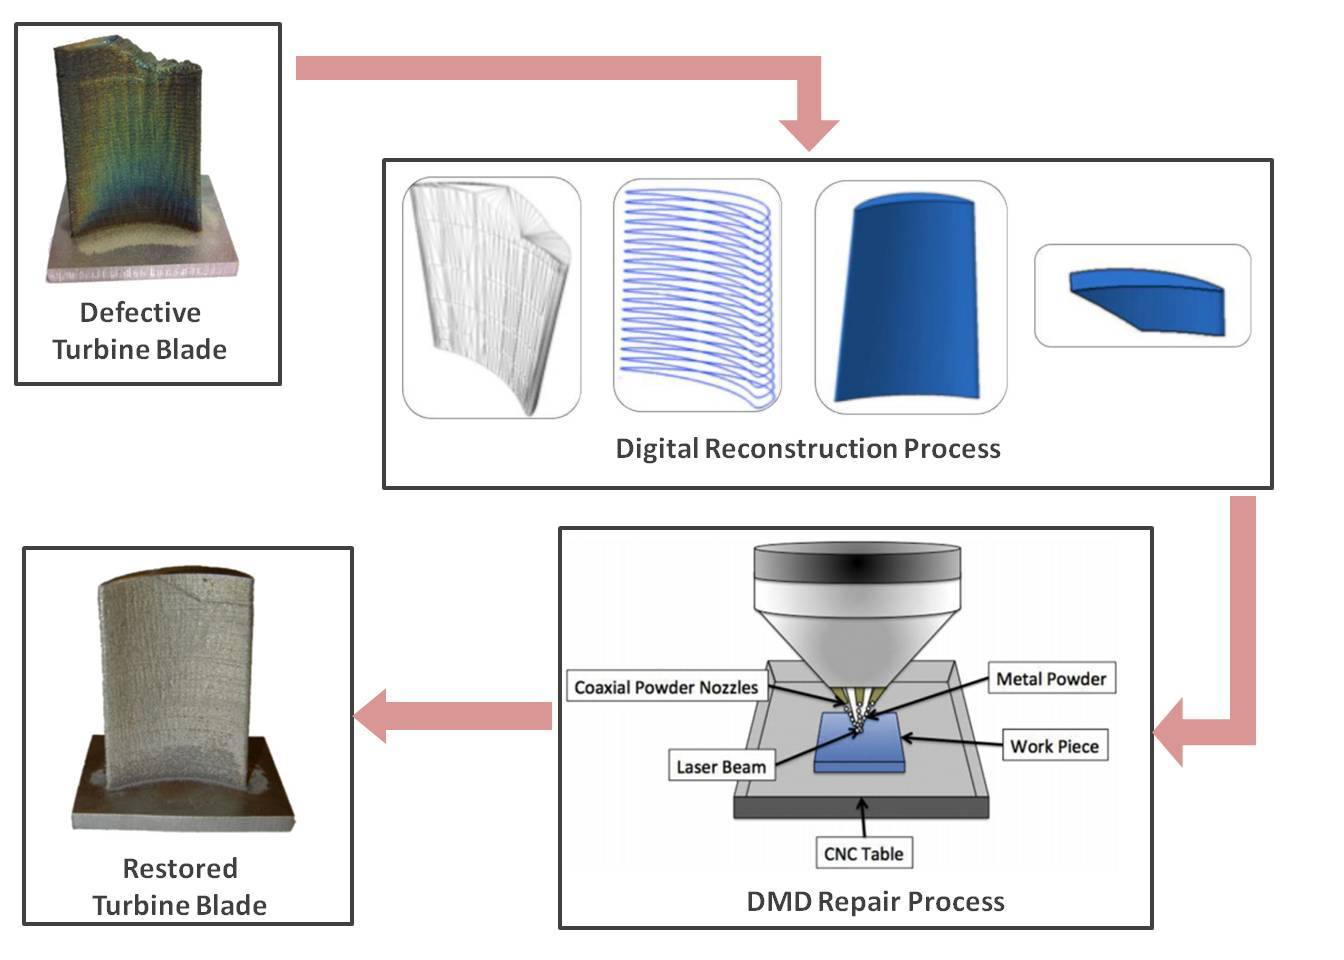 Remanufacturing of Turbine Blades by Laser Direct Deposition with Its Energy and Environmental Impact Analysis